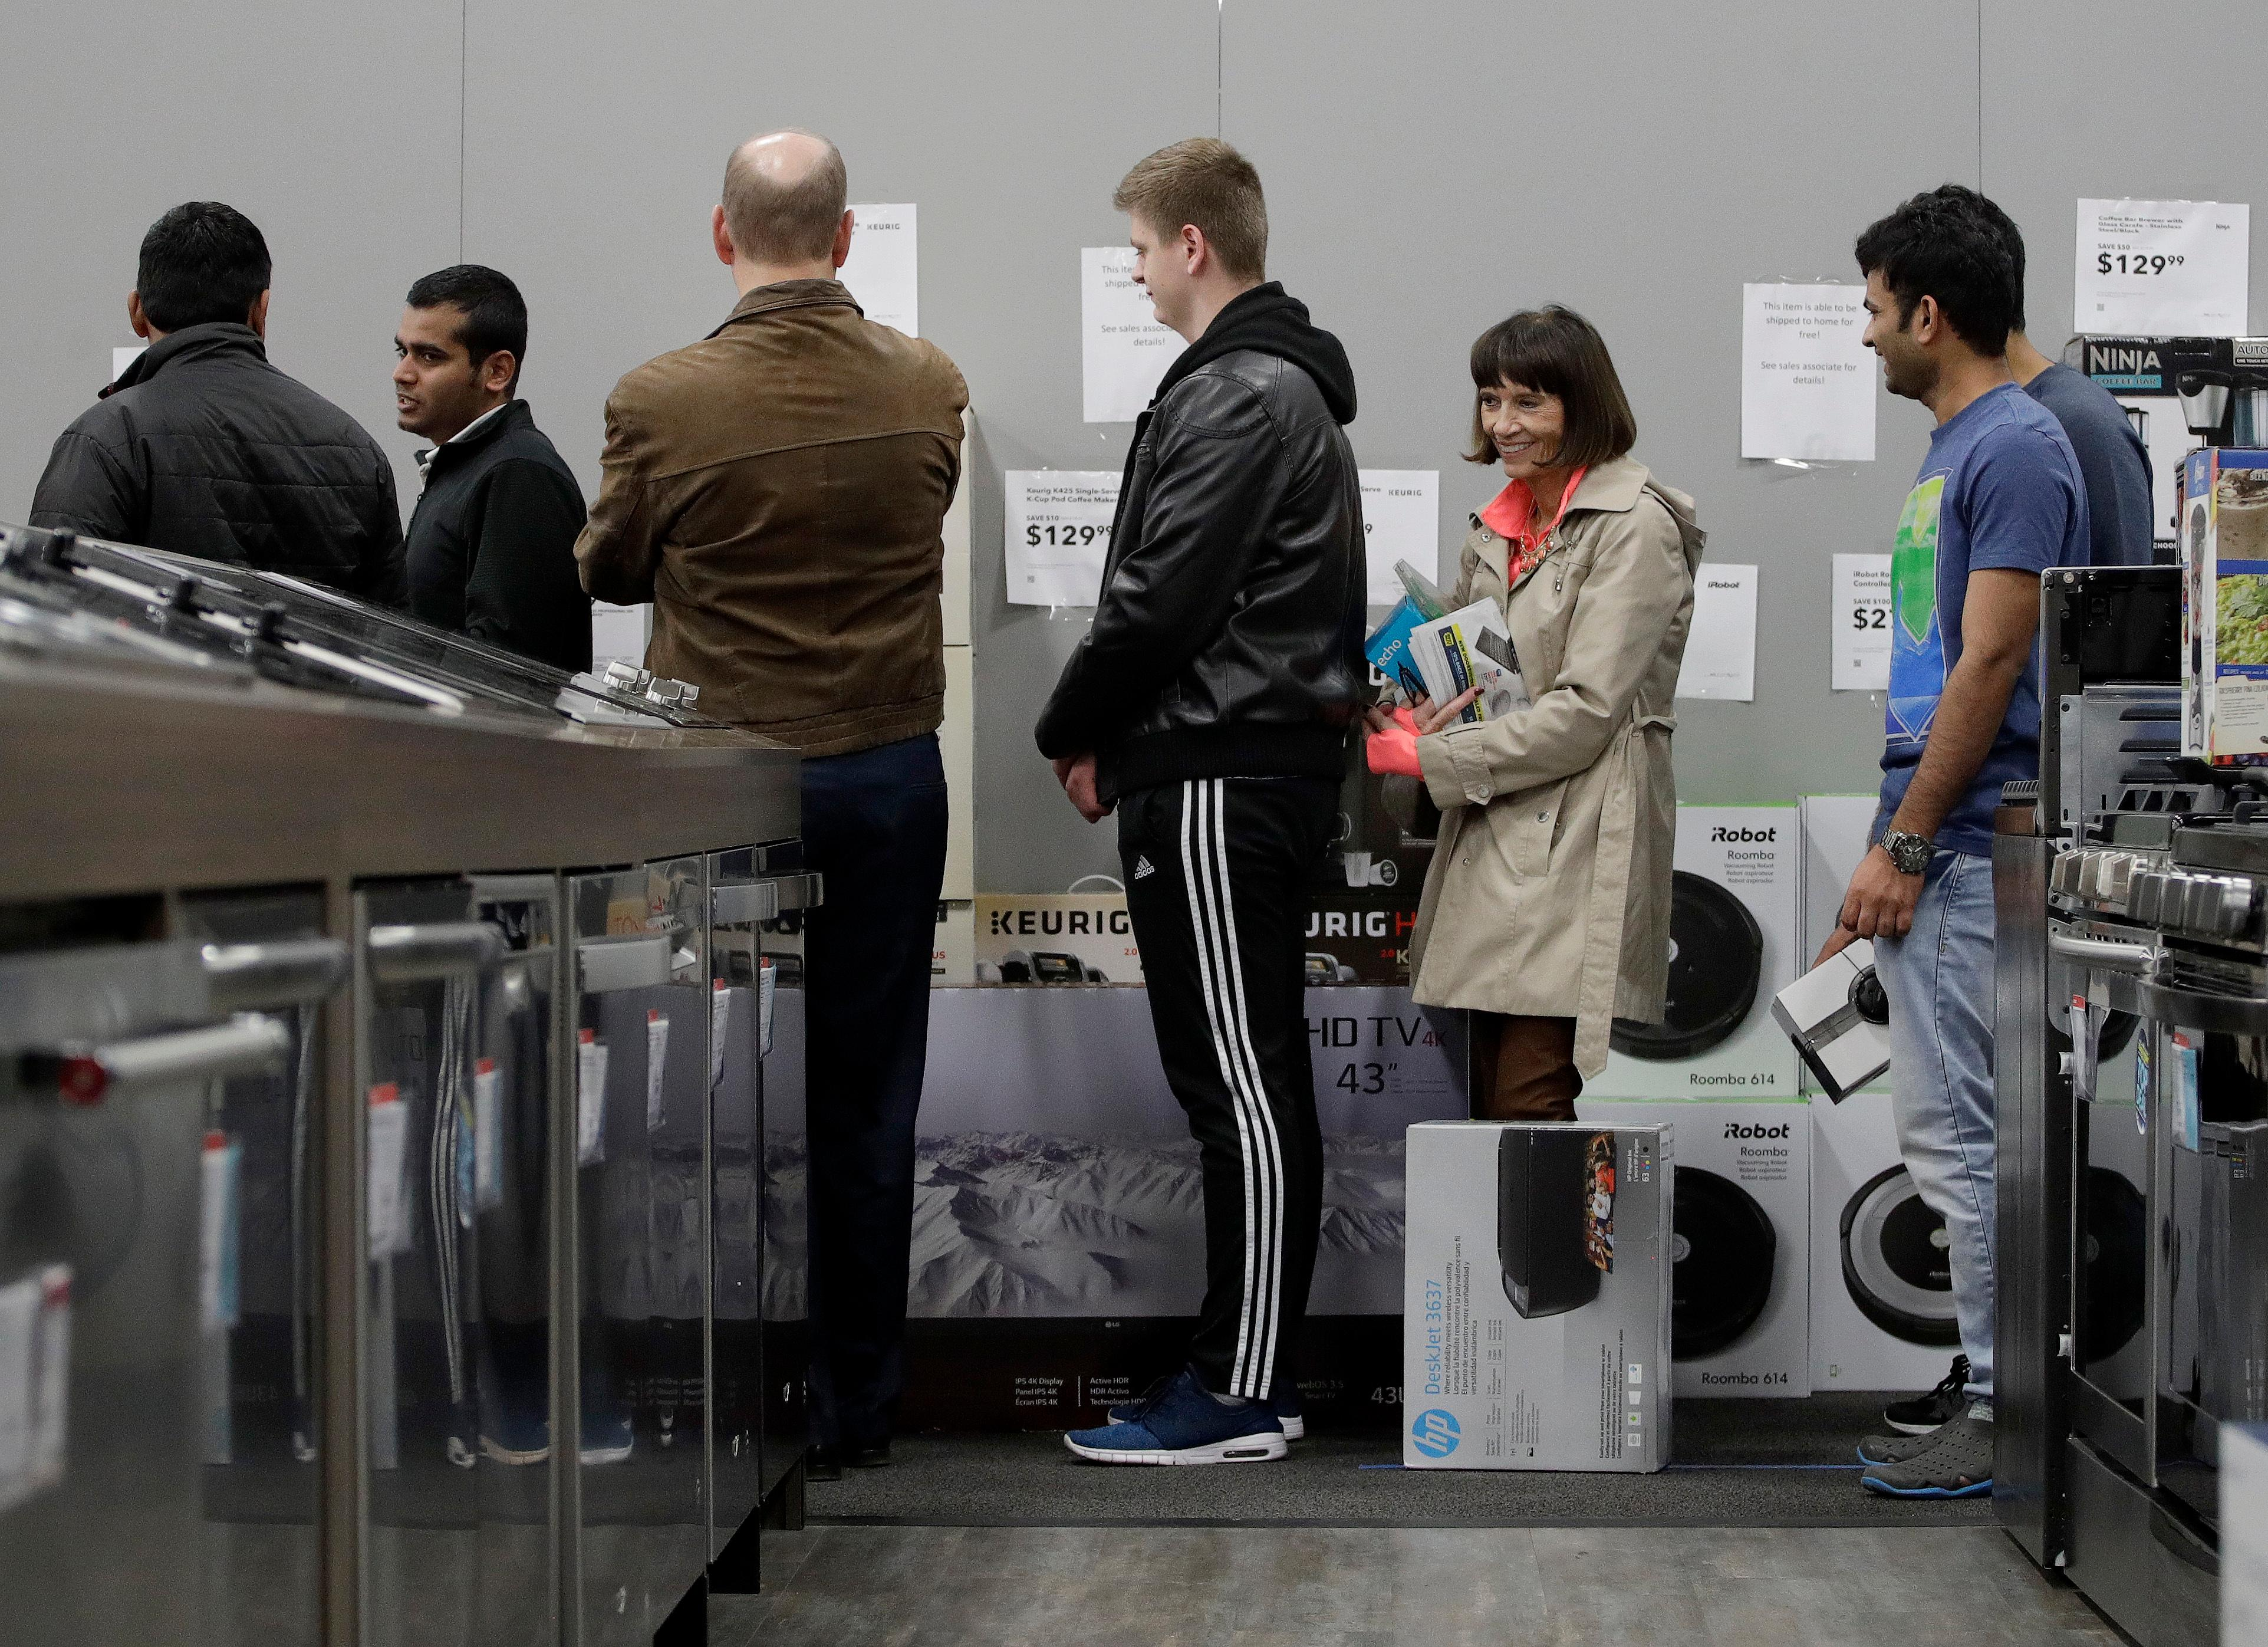 People line up to check out as they shop a Black Friday sale at a Best Buy store on Thanksgiving Day, Thursday, Nov. 23, 2017, in Overland Park, Kan. Shoppers are hitting the stores on Thanksgiving as retailers under pressure look for ways to poach shoppers from their rivals. (AP Photo/Charlie Riedel)